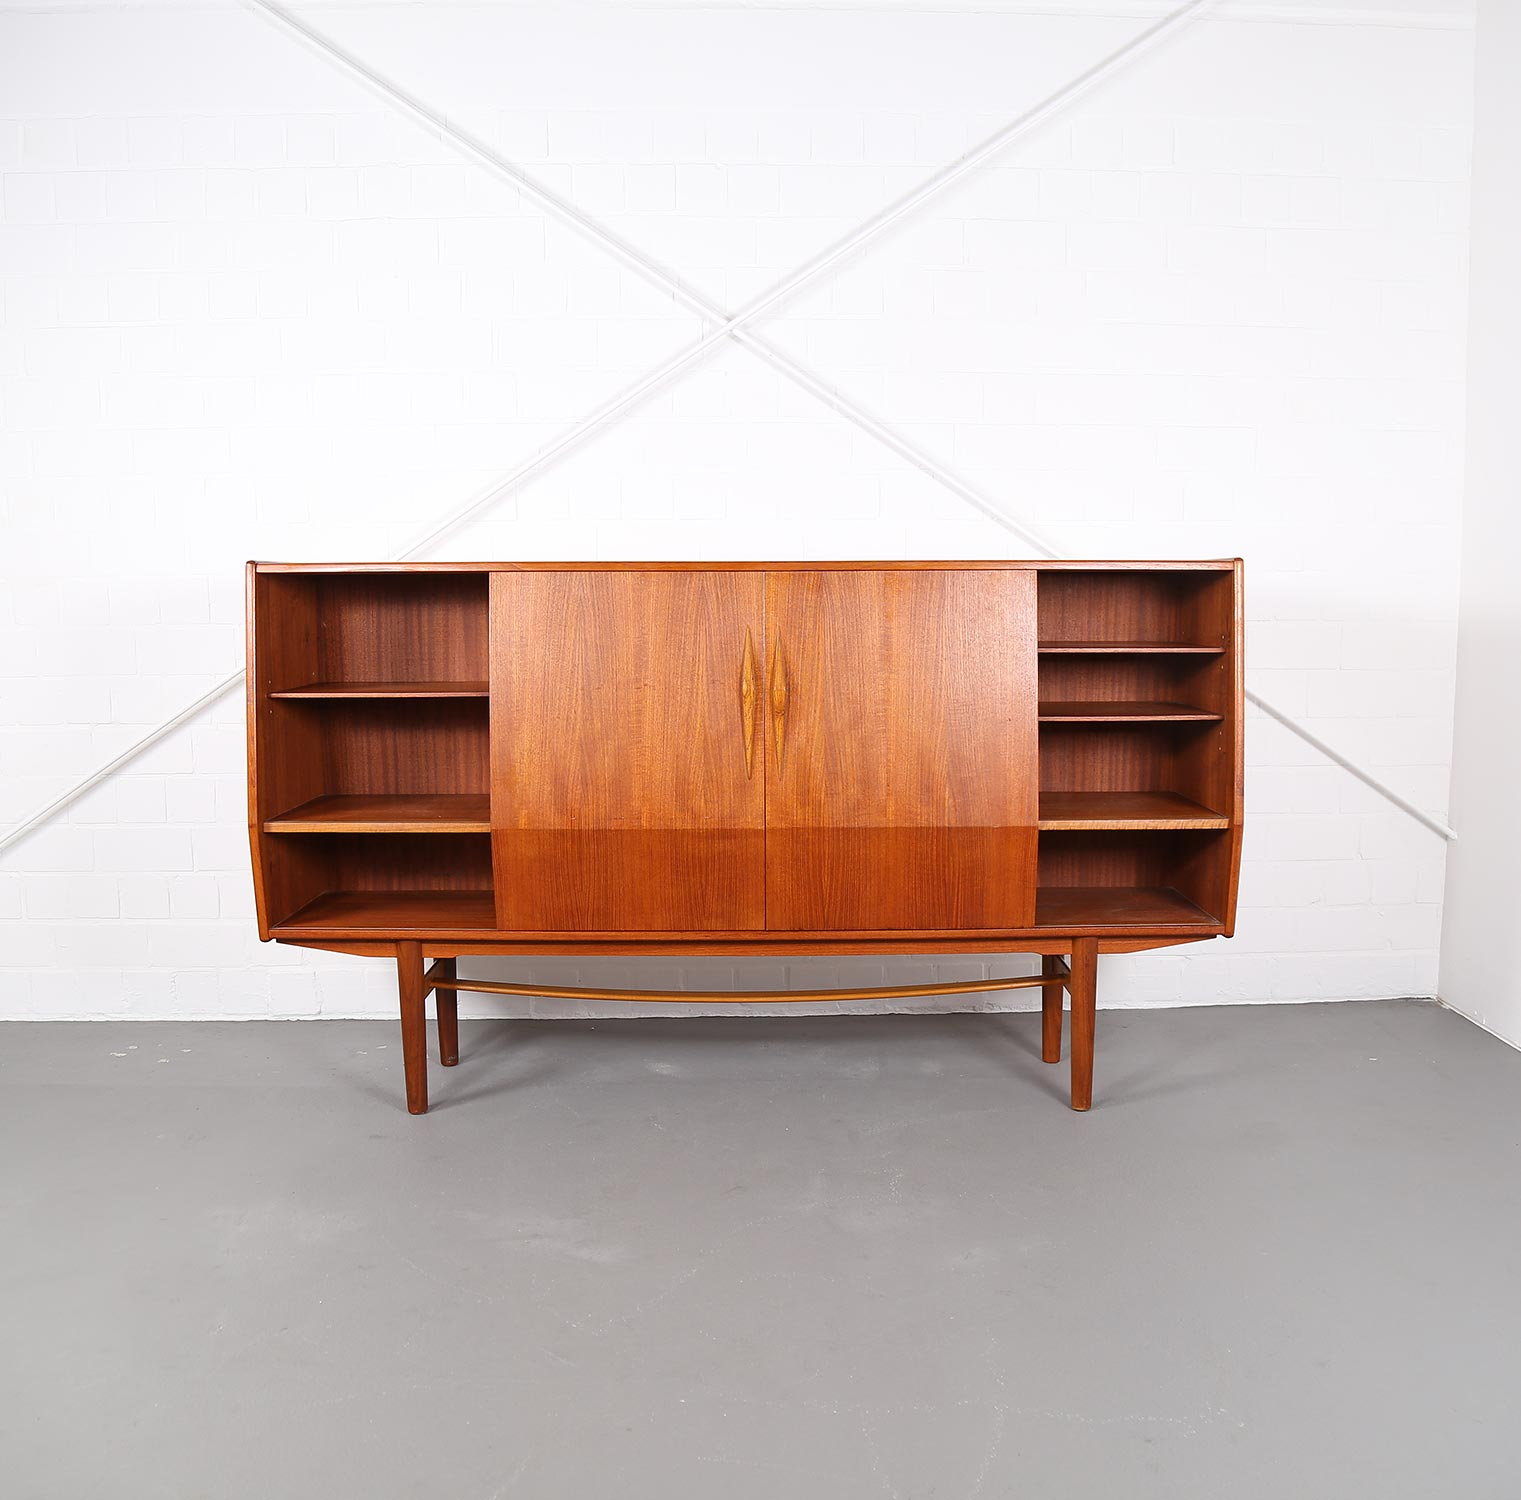 Sideboard Danish Design Geometric Danish Design Teak Sideboard Credenza Dekaden